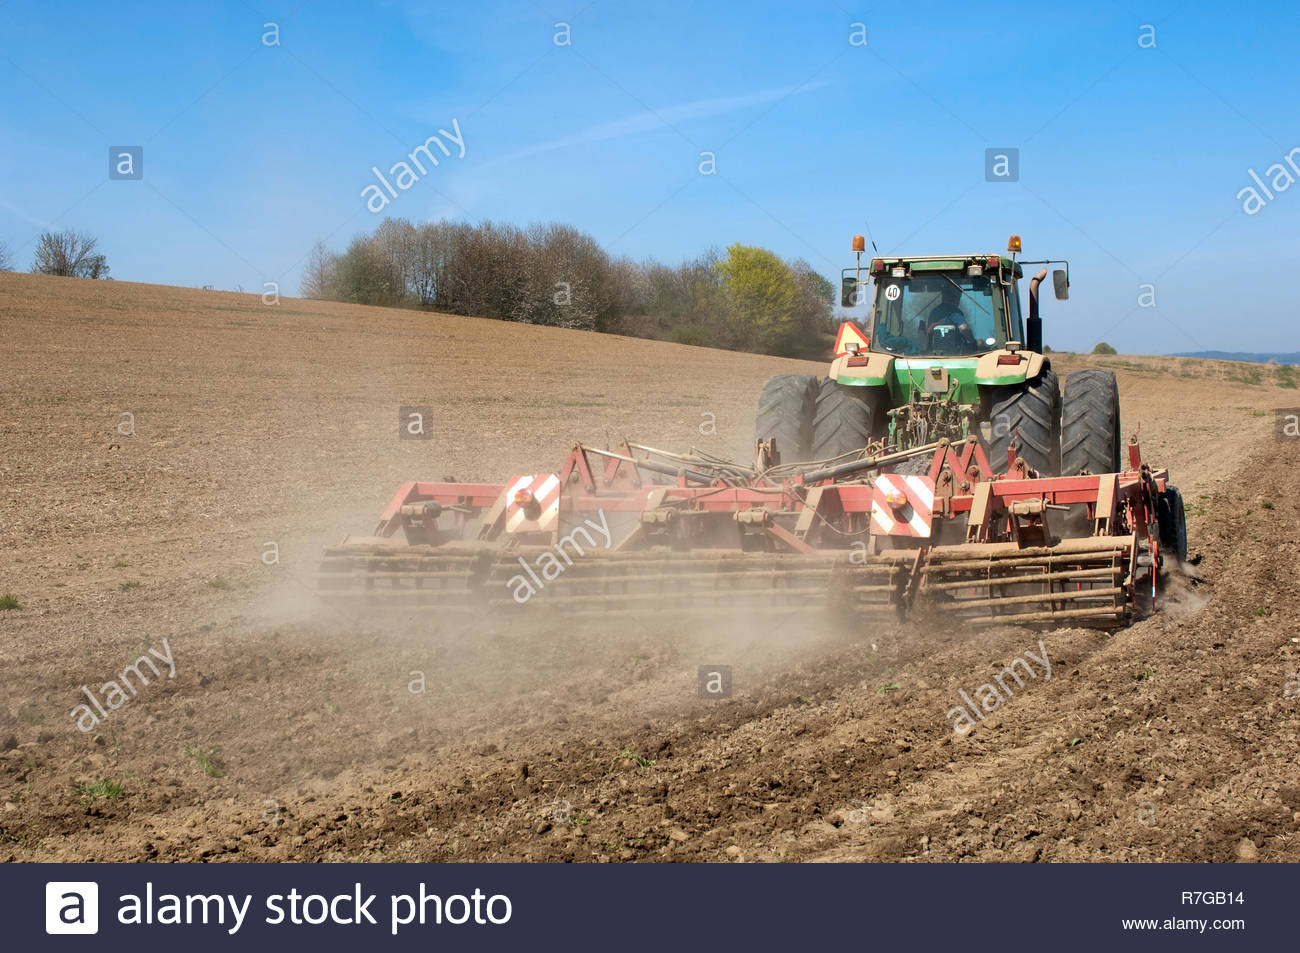 Tractor with cultivator prepares field for seeding. Stock Photo